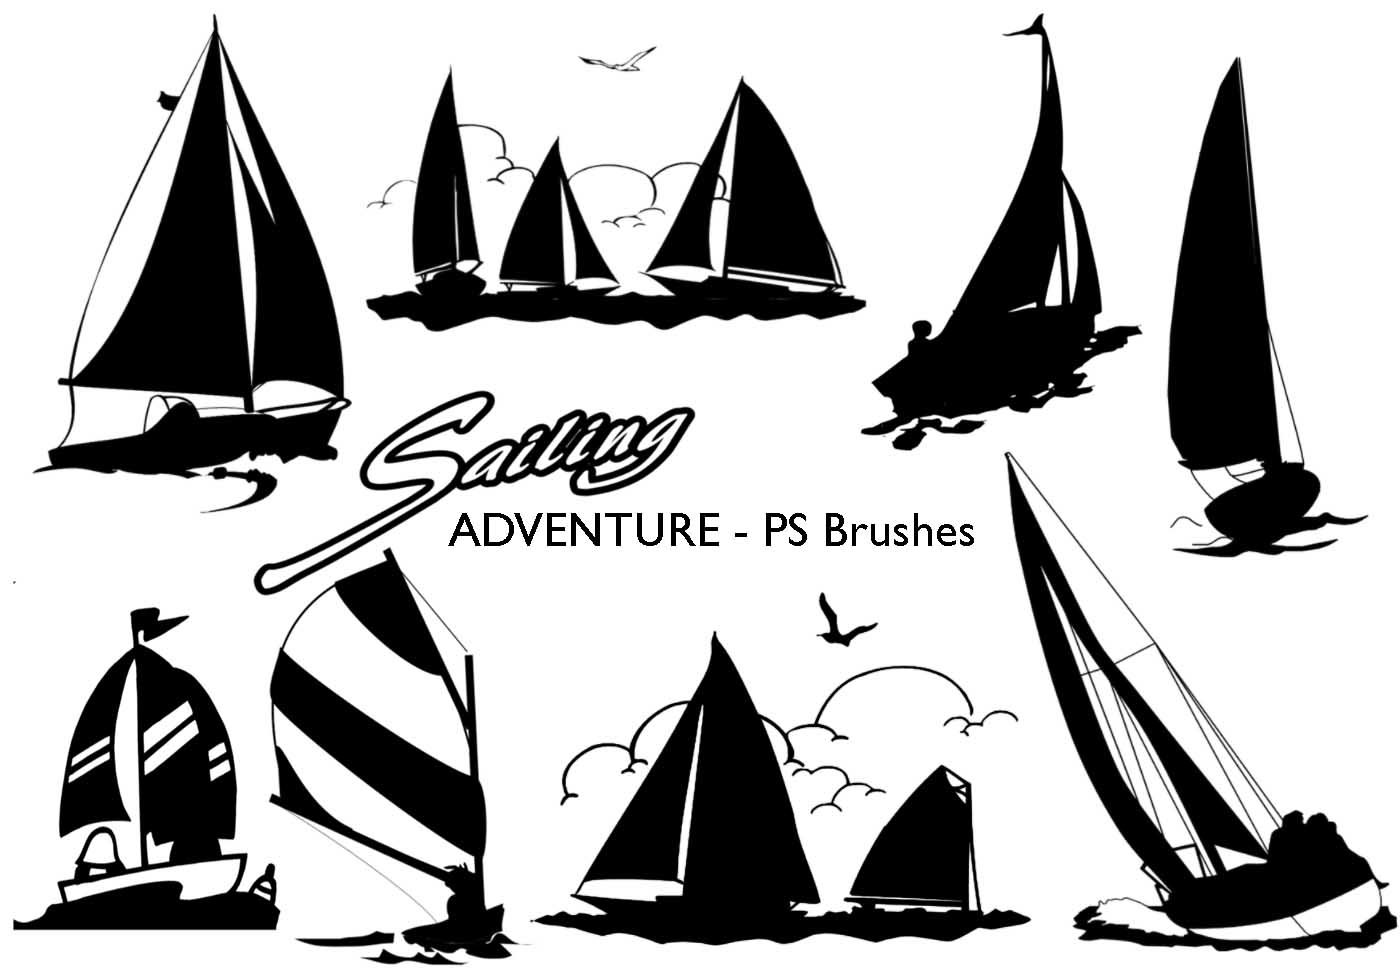 Boat Free Brushes 285 Free Downloads